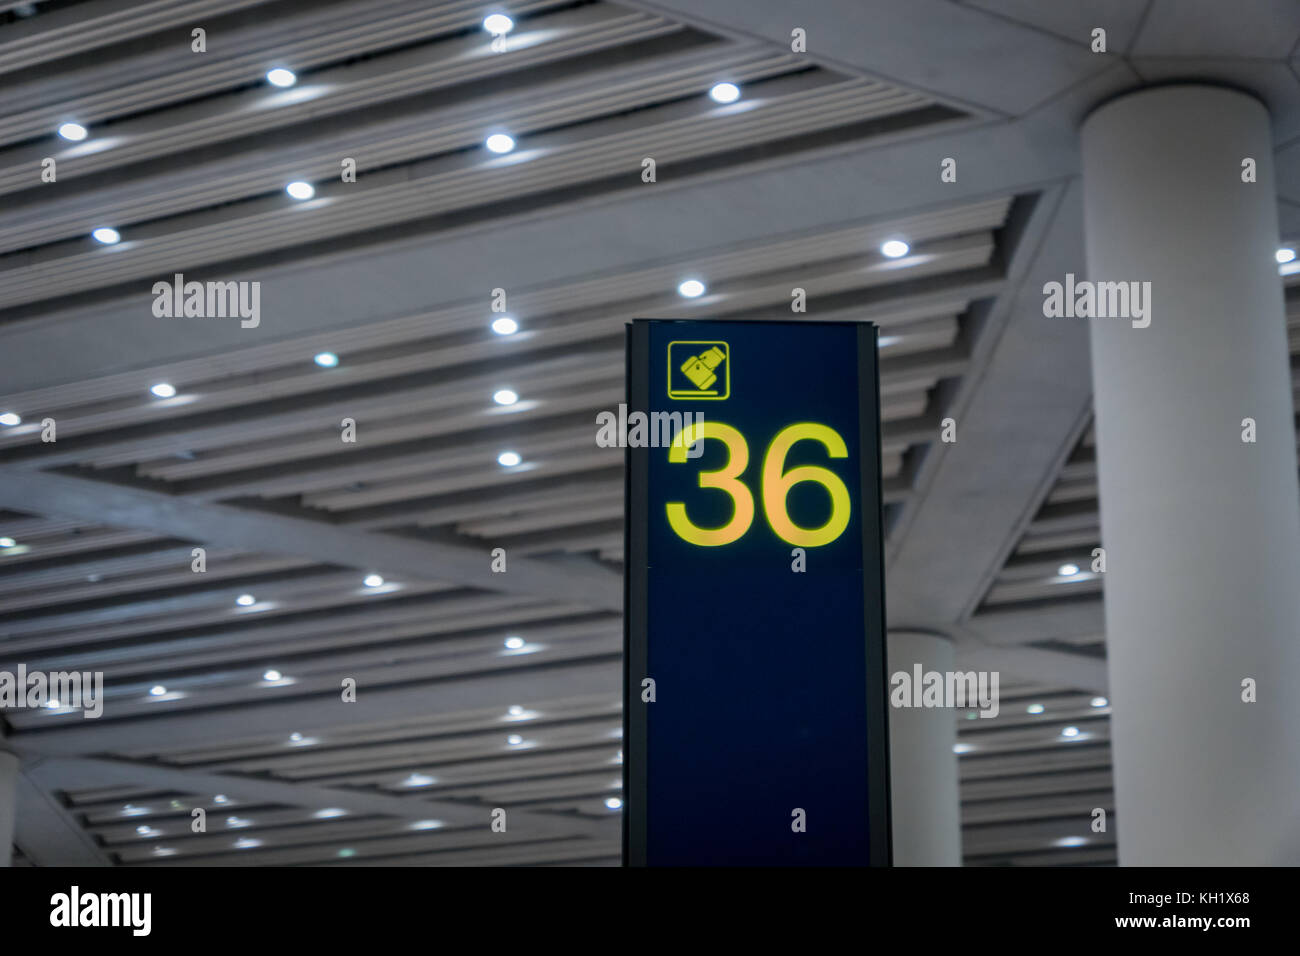 Airport arrival area baggage claim number sign board in departure area - Stock Image